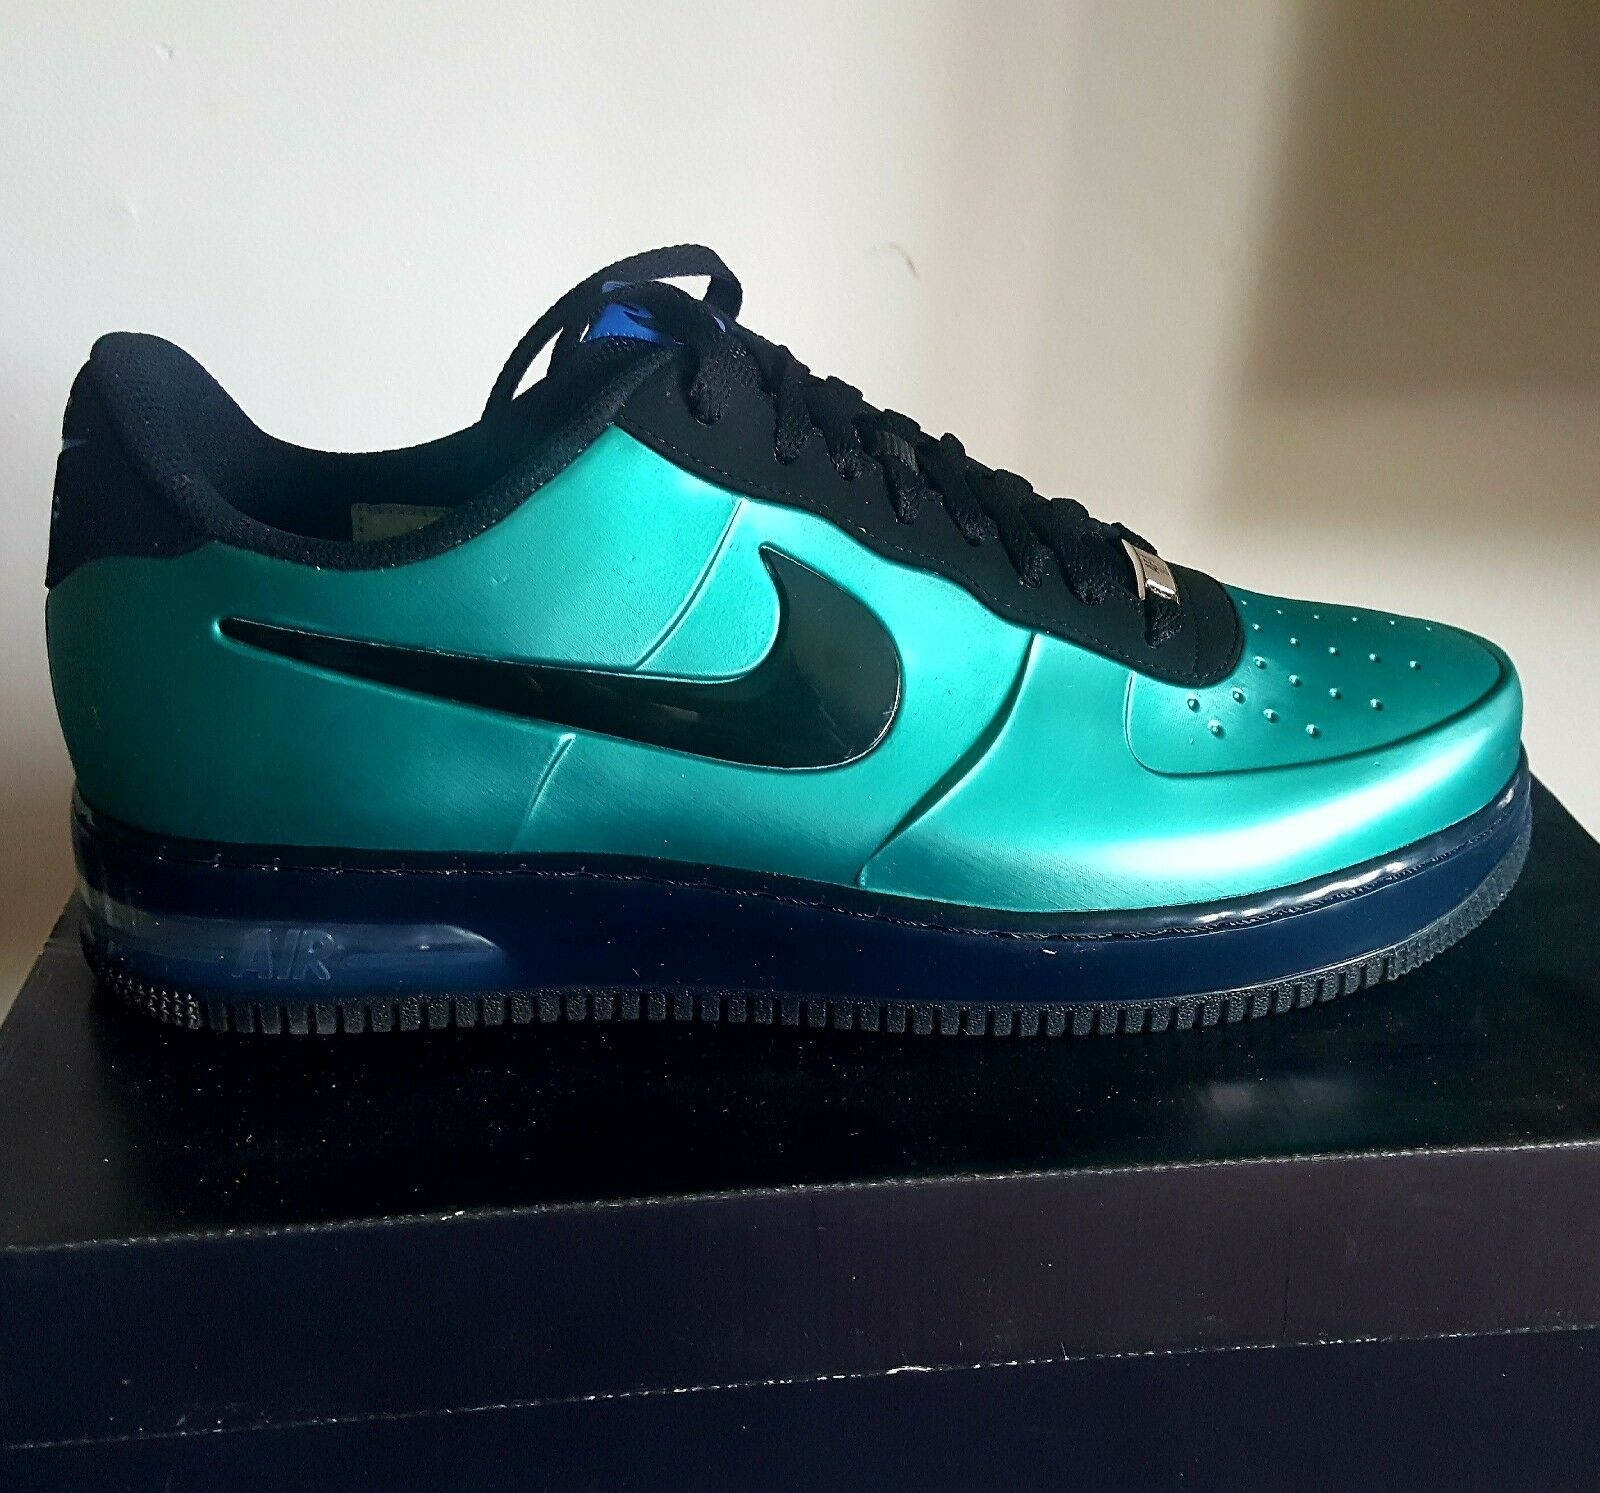 NIKE AIR FORCE 1 FOAMPOSITE PRO LOW   NEW GREEN   BLACK   EXCLUSIVELY RARE